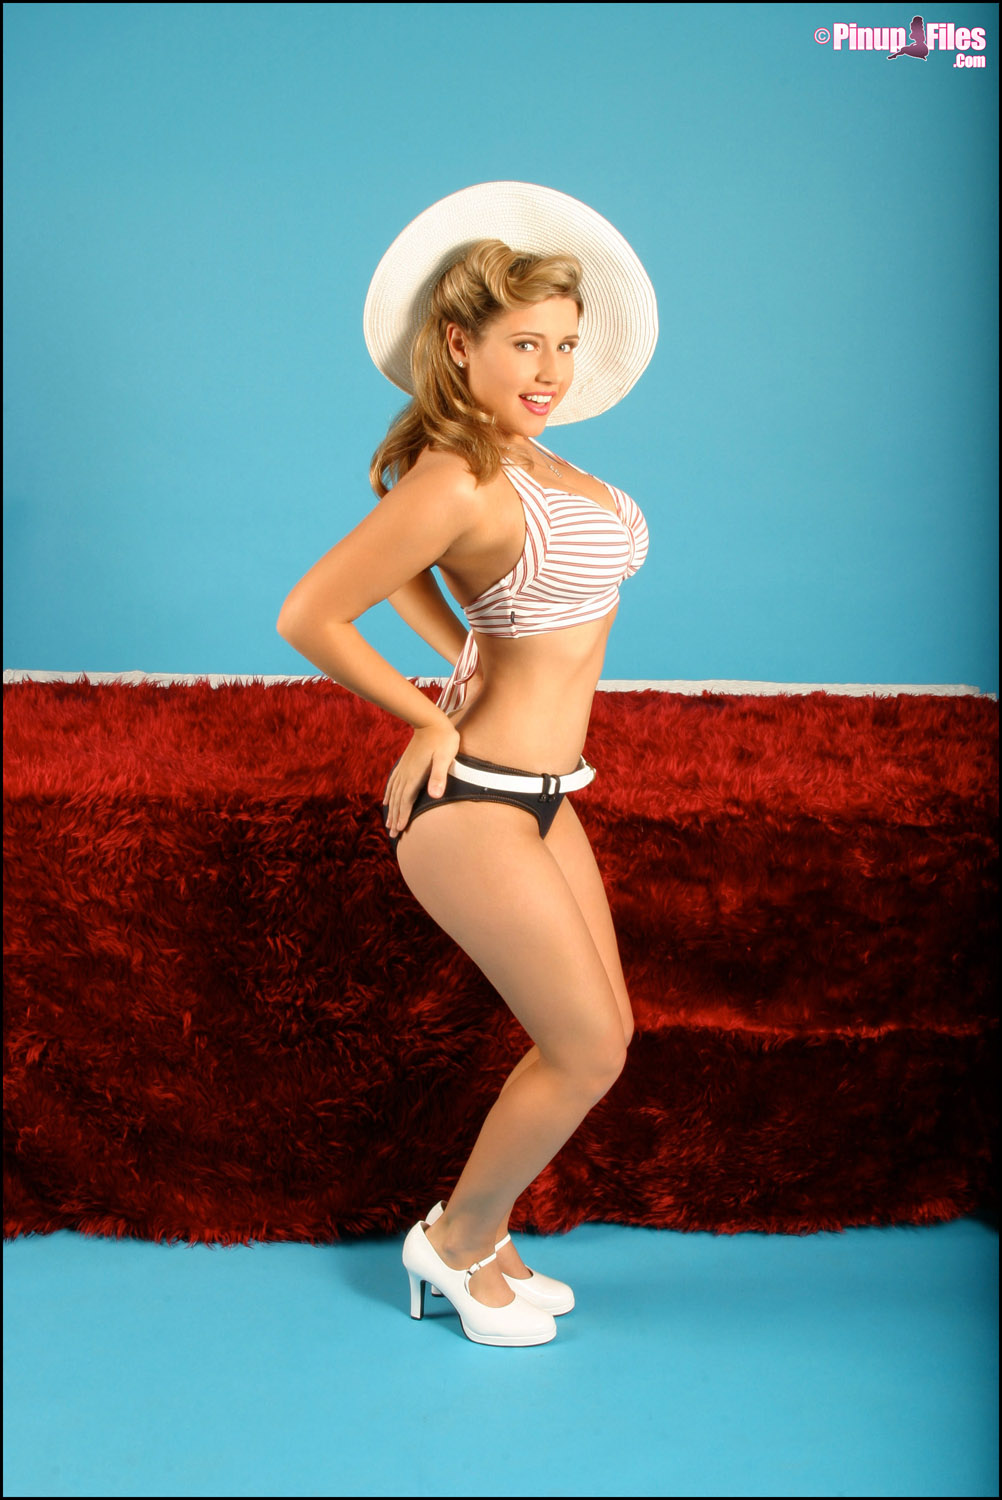 pinup Erica campbell